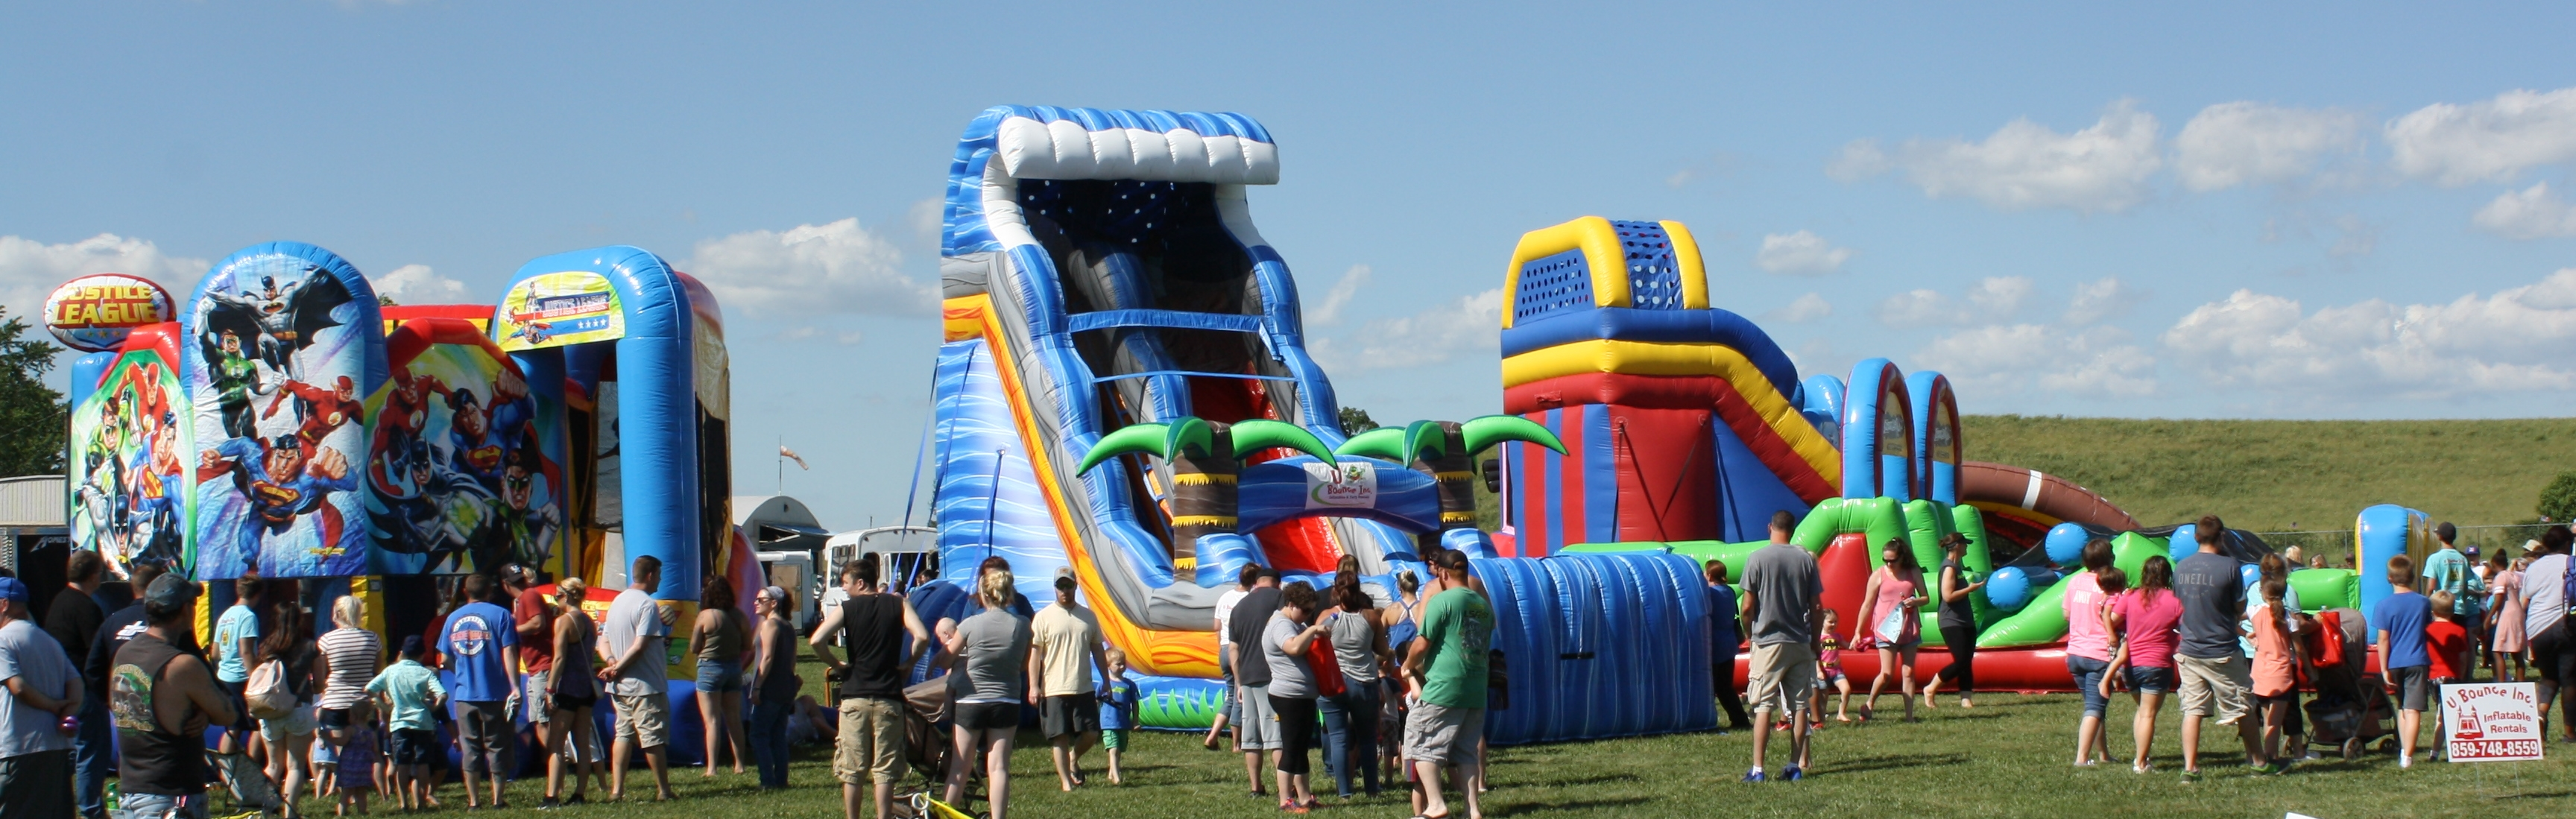 inflatable bounce houses, obstacle courses, water slides, and games in Danville, KY